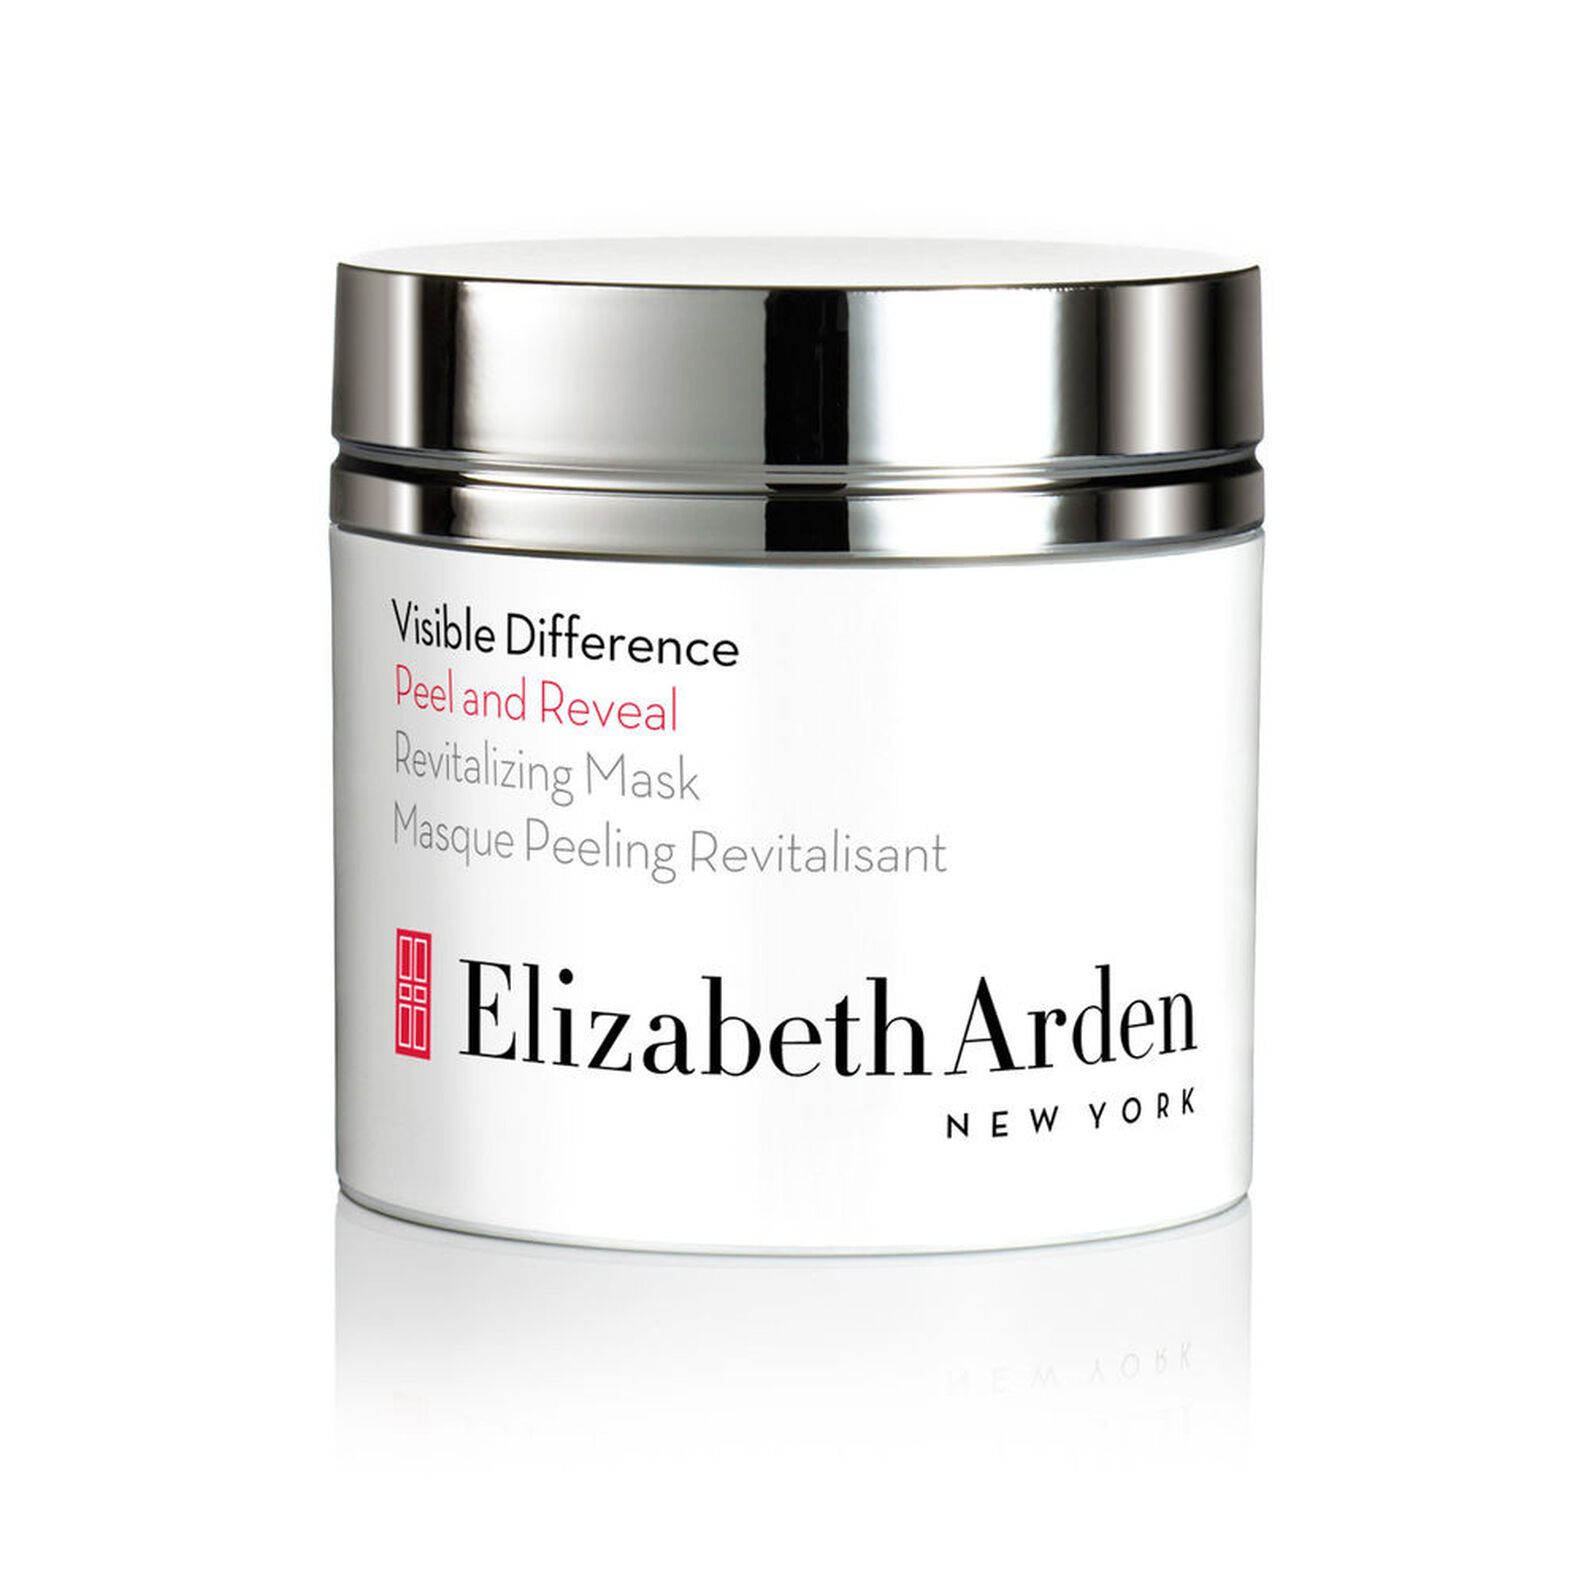 Visible Difference Peel and Reveal Revitalizing Mask 50 ml